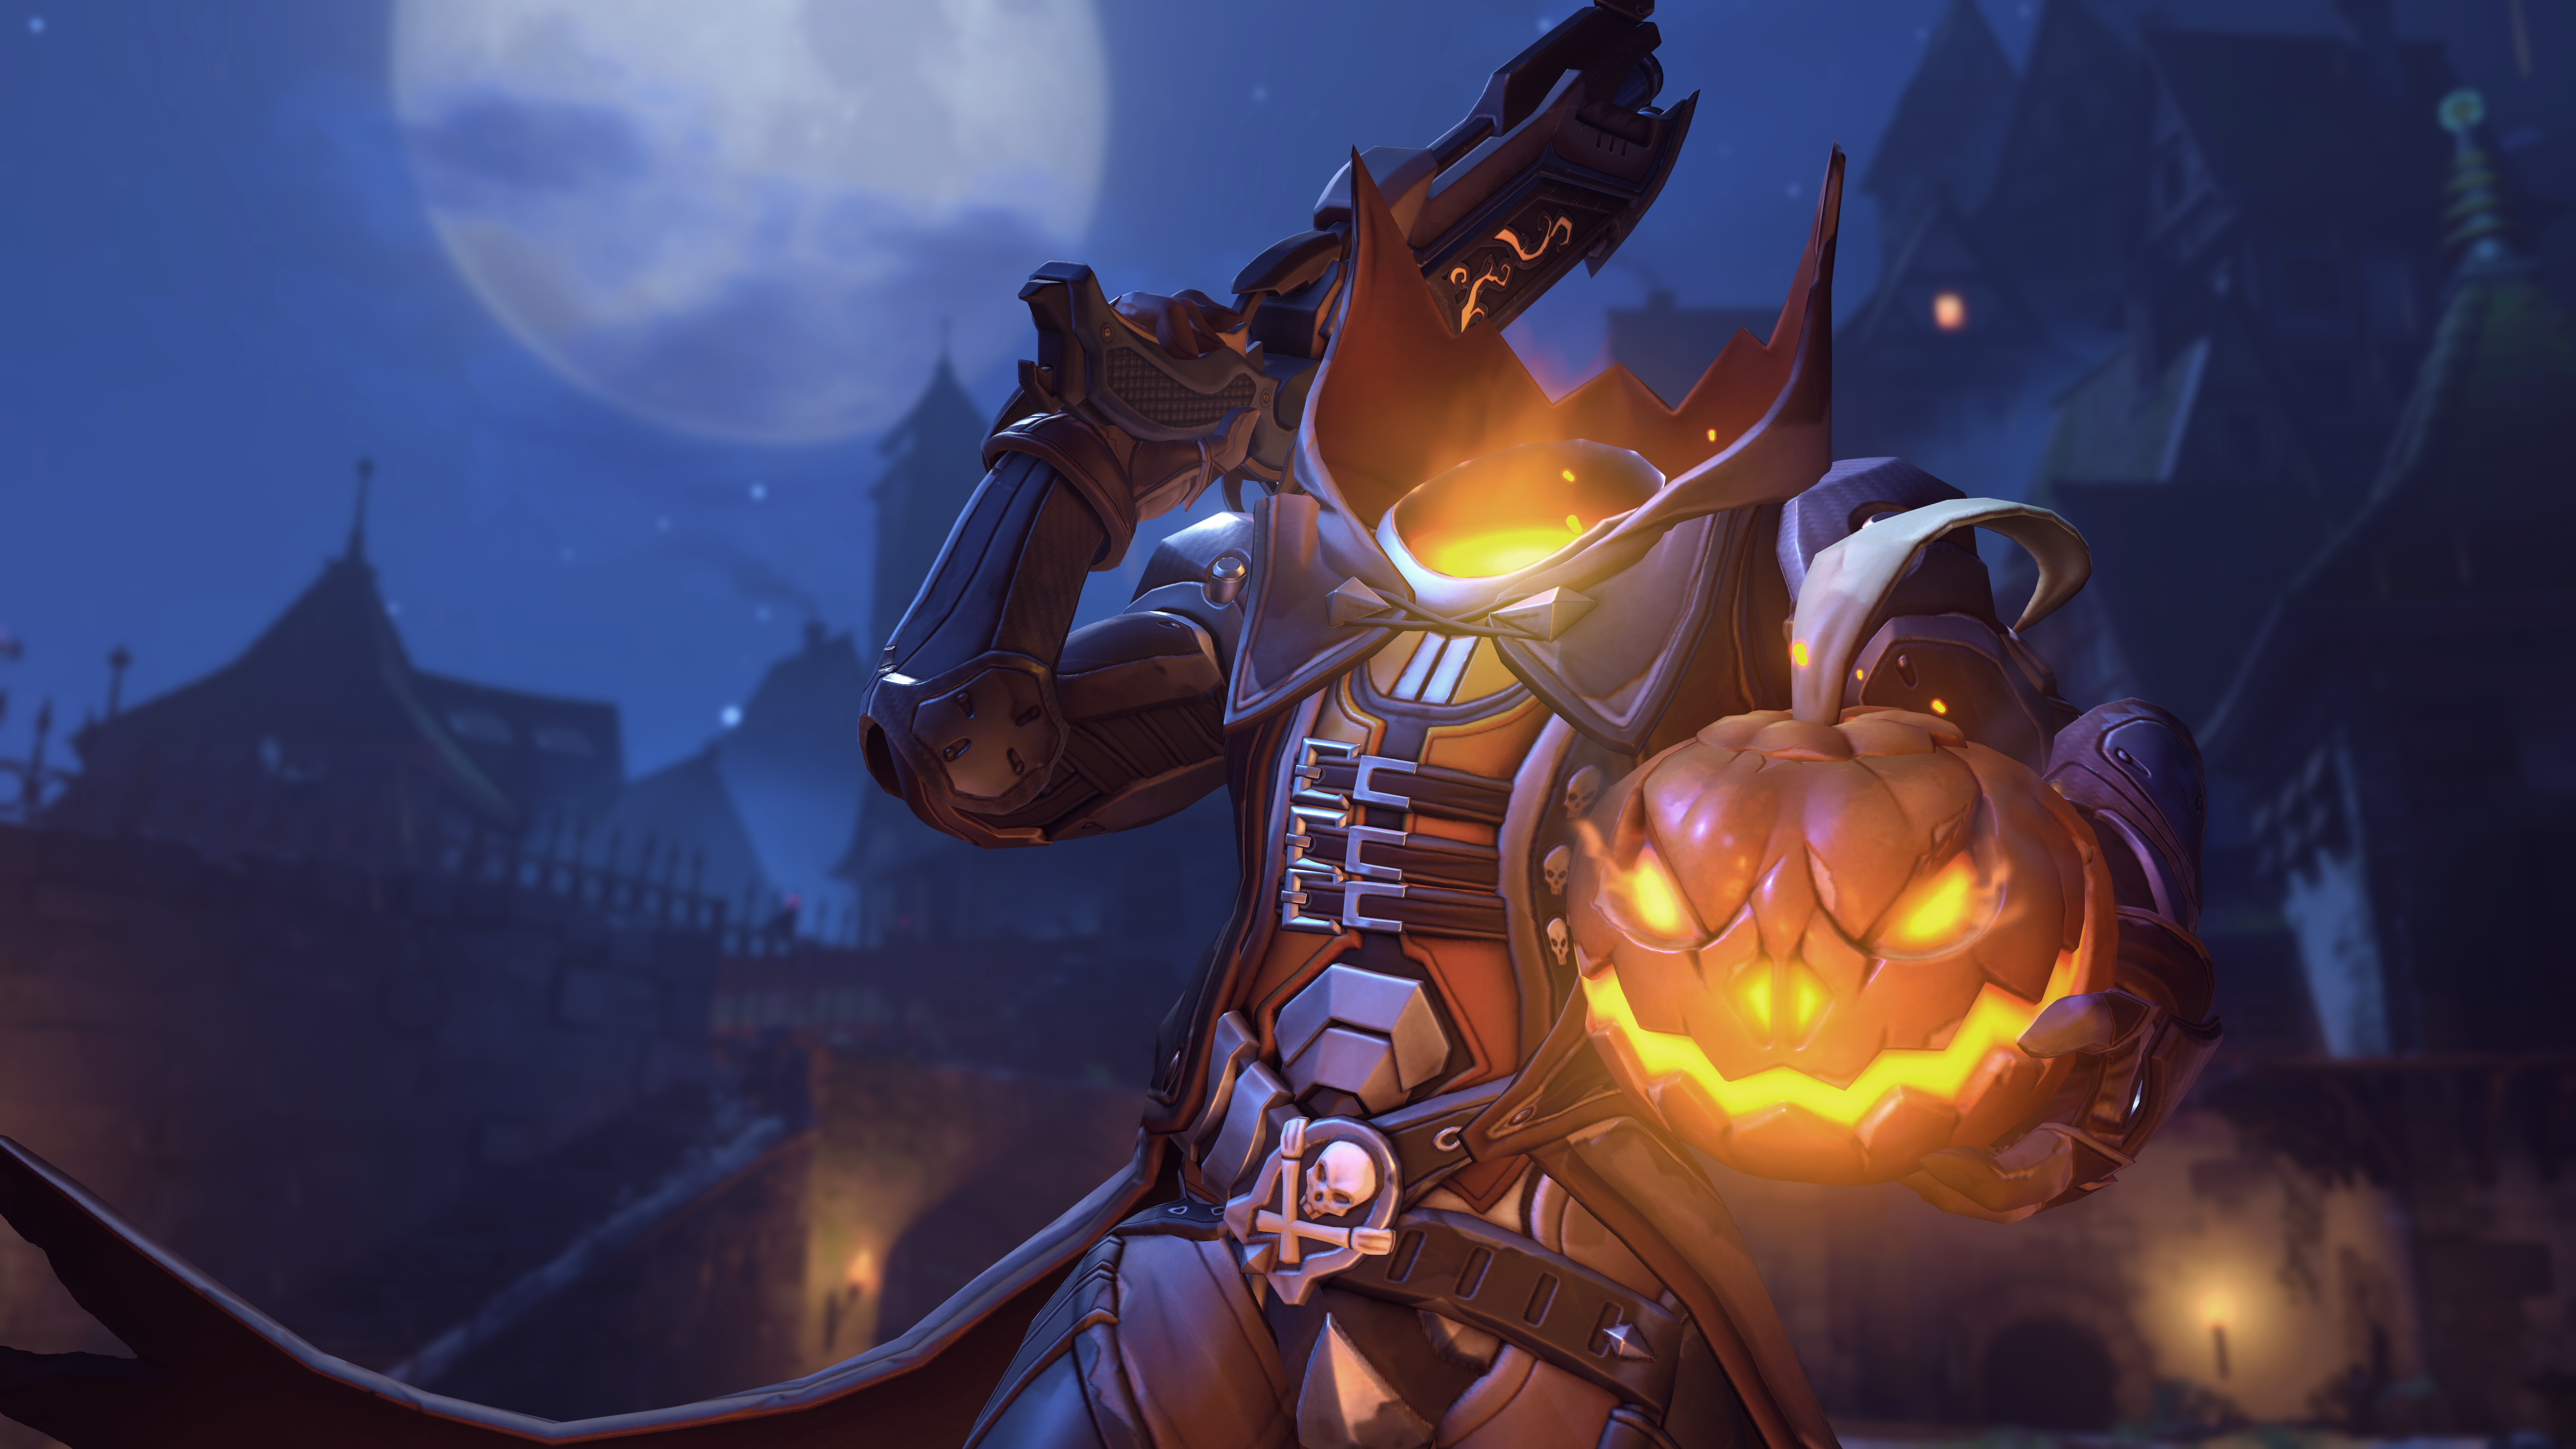 Give Your Pumpkin the Overwatch Treatment with these Halloween Stencils